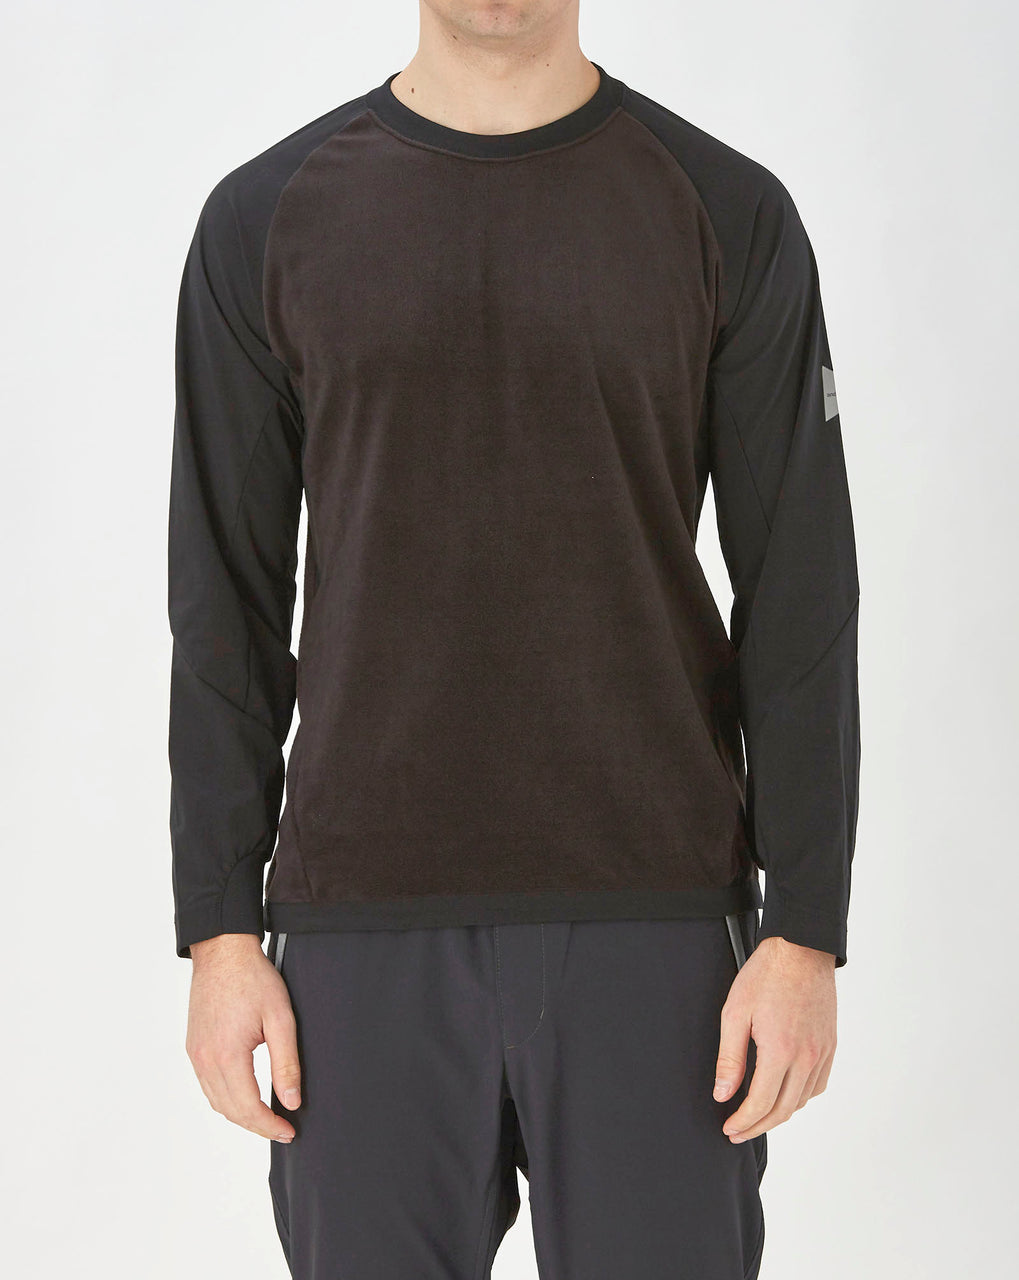 and Wander Fleece Base T (Black)